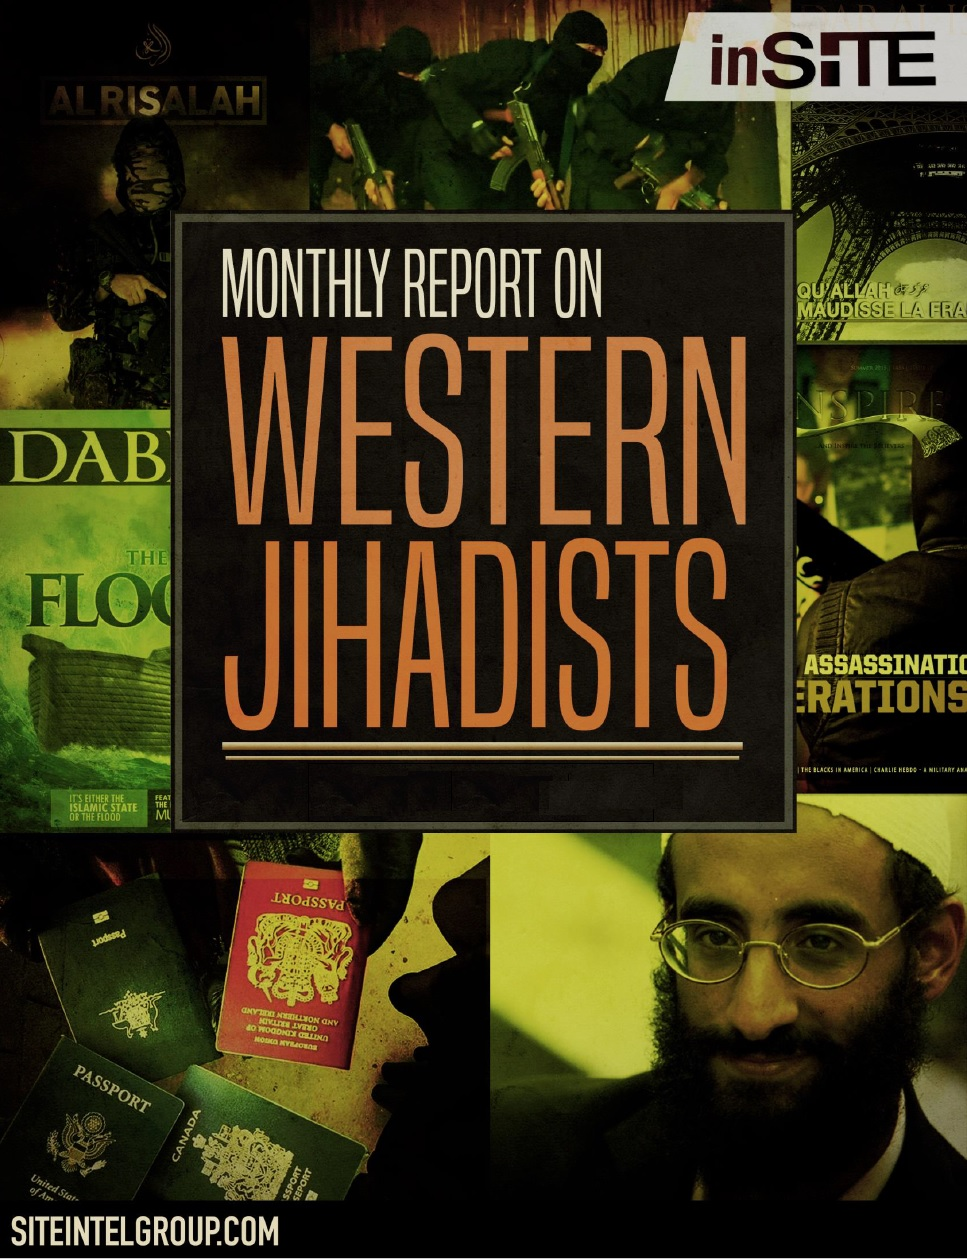 inSITE on Western Jihadists January - March, 2017